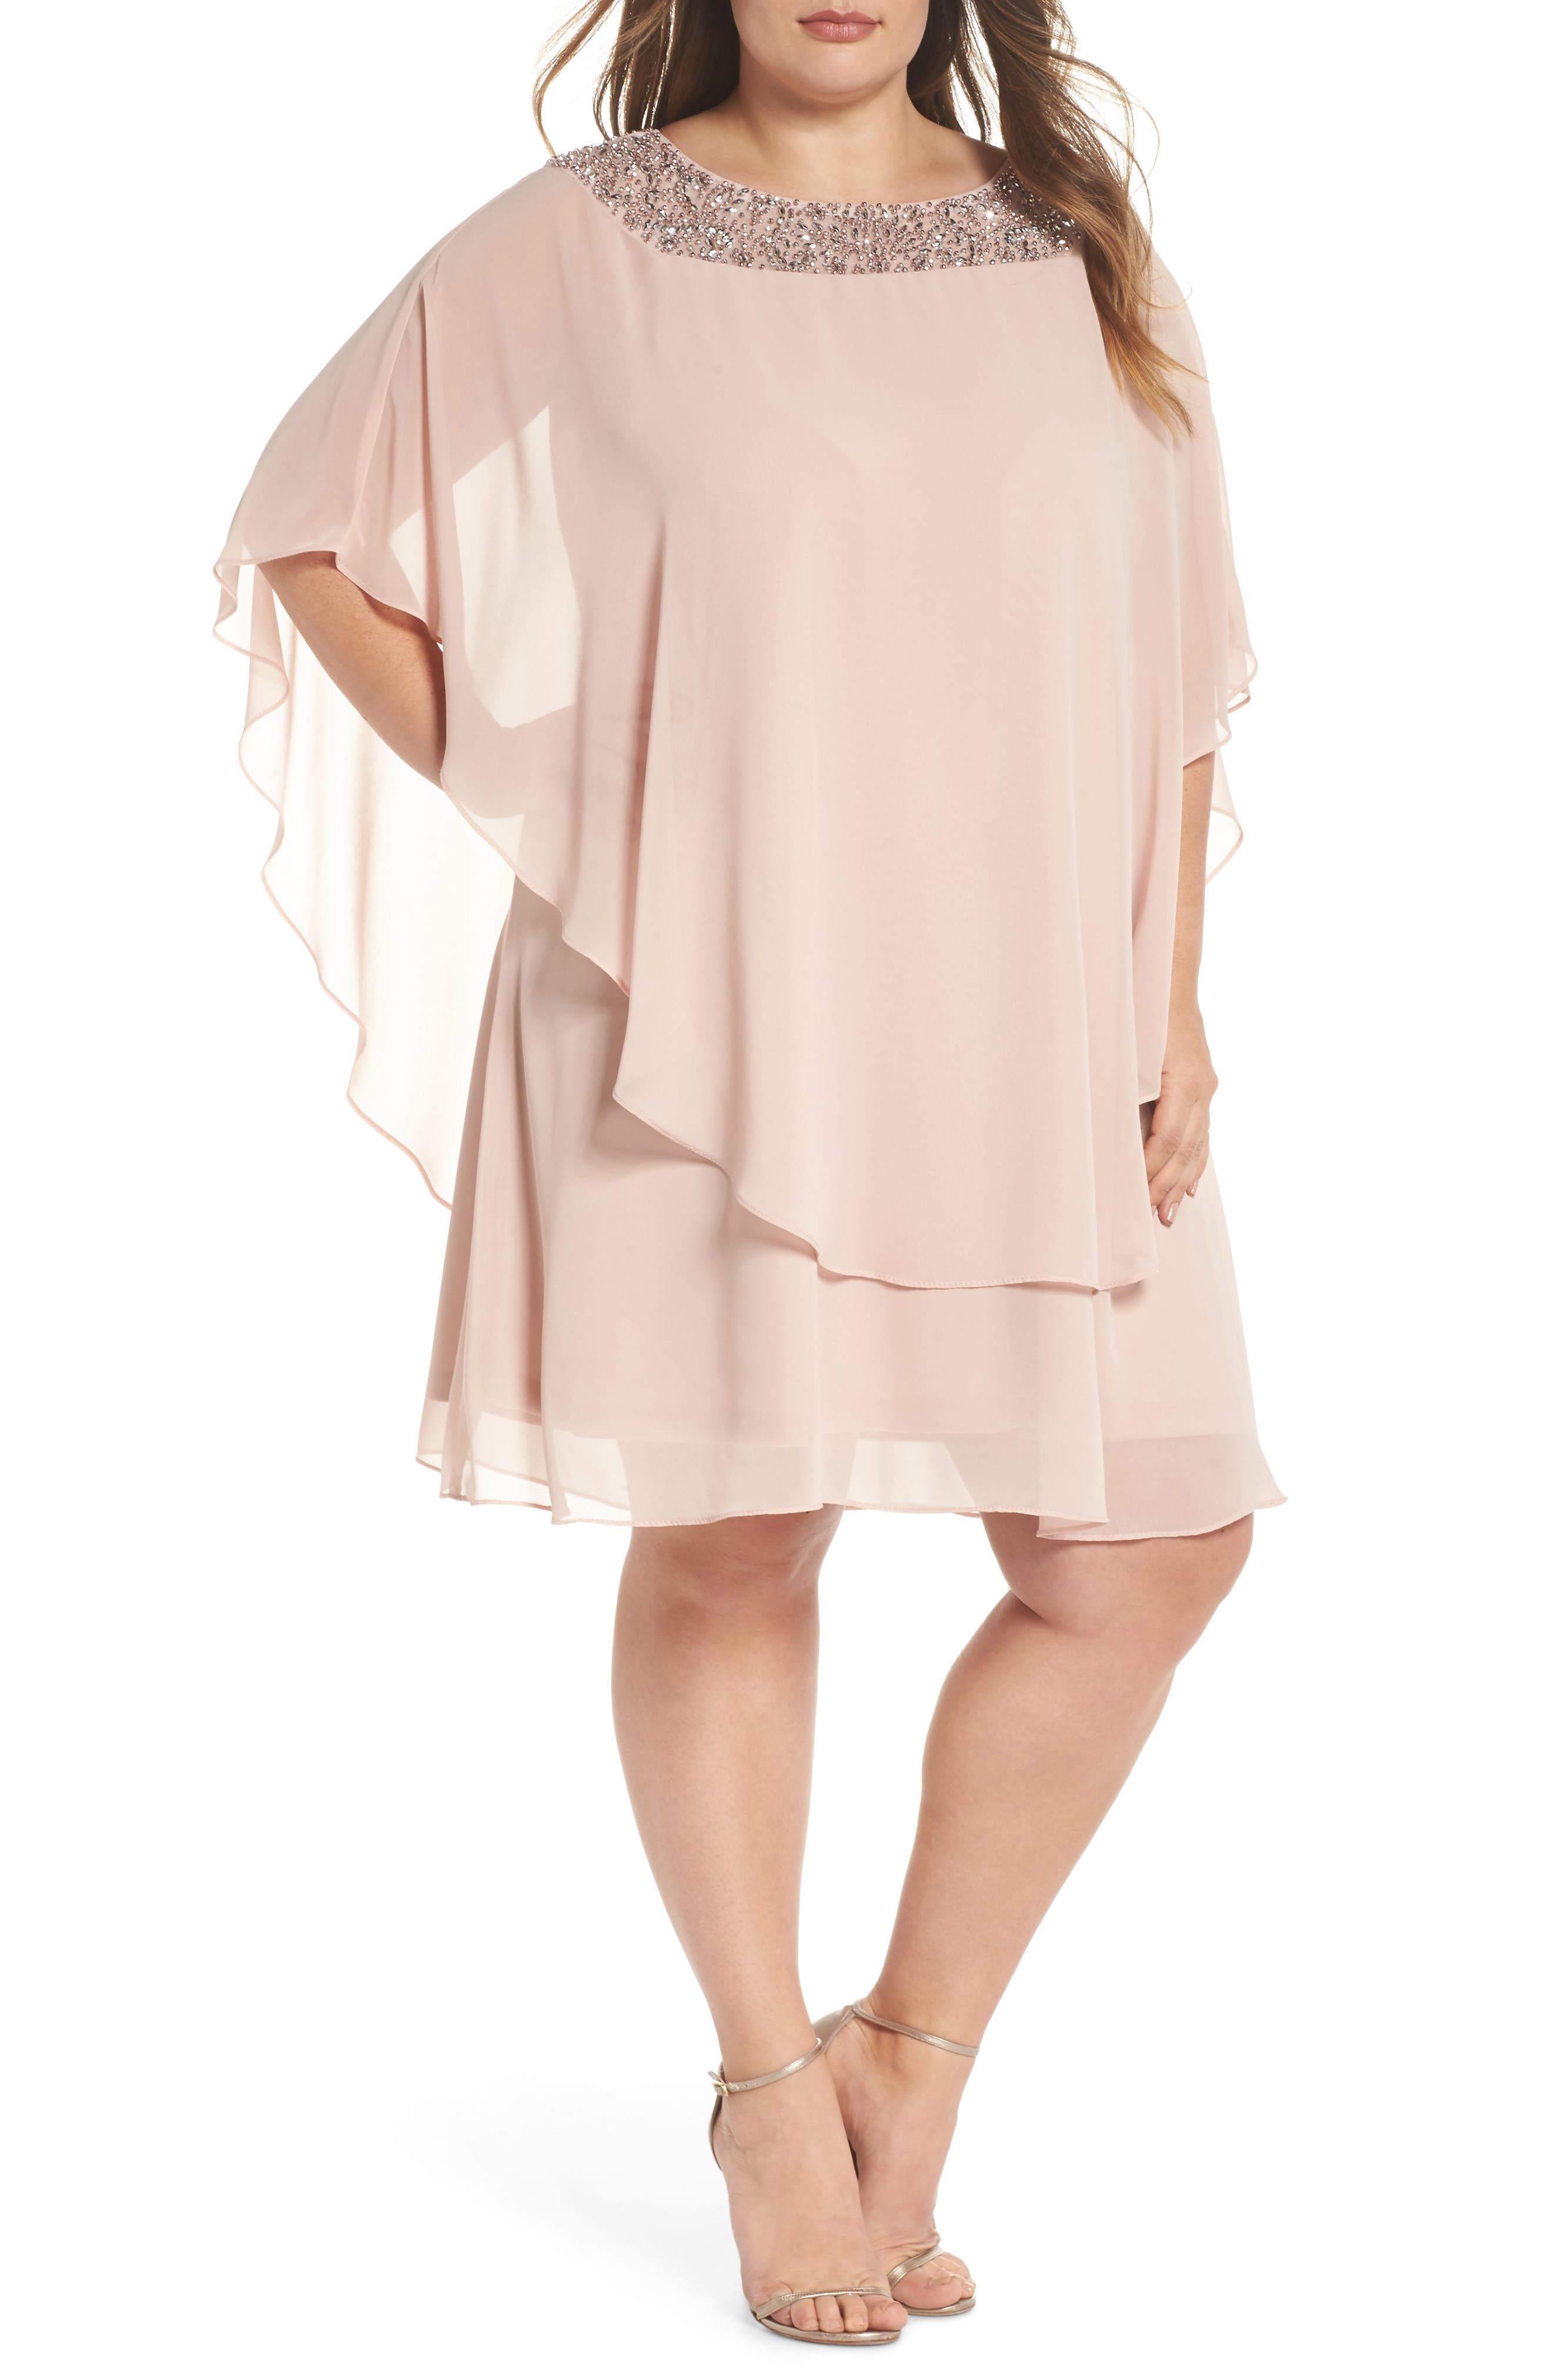 Beaded Neck Chiffon Overlay Dress,                         Main,                         color, Blush/ Silver